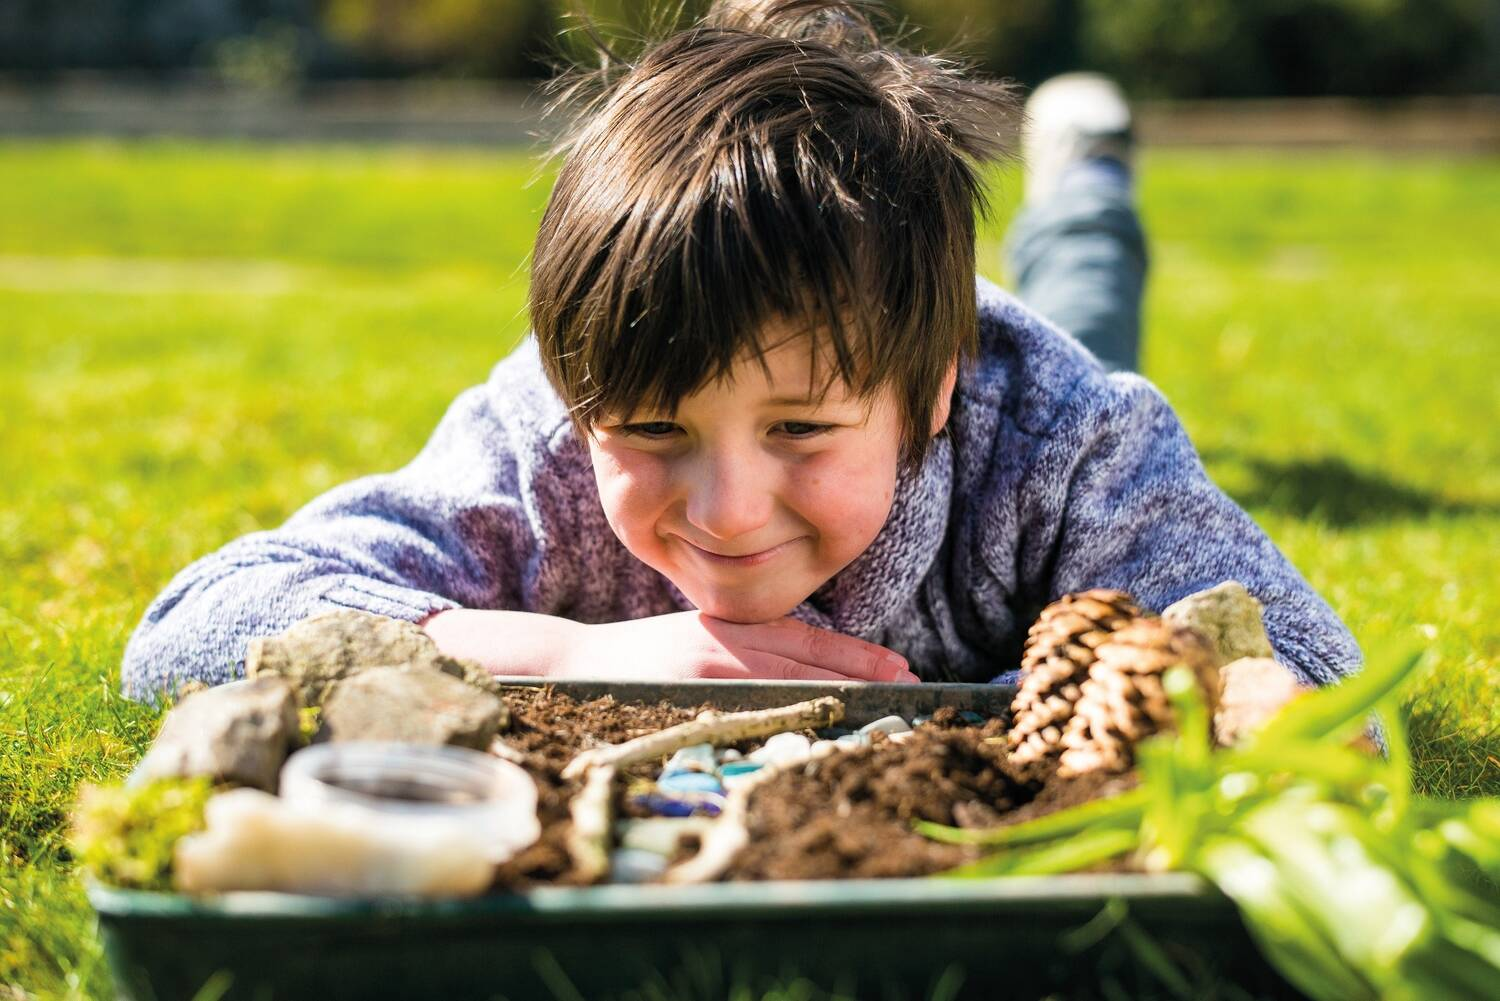 A boy lies on the grass on his tummy, resting his chin on his hands. In front of him is a planting tray, filled with soil, pine cones, stones and twigs. He is smiling.